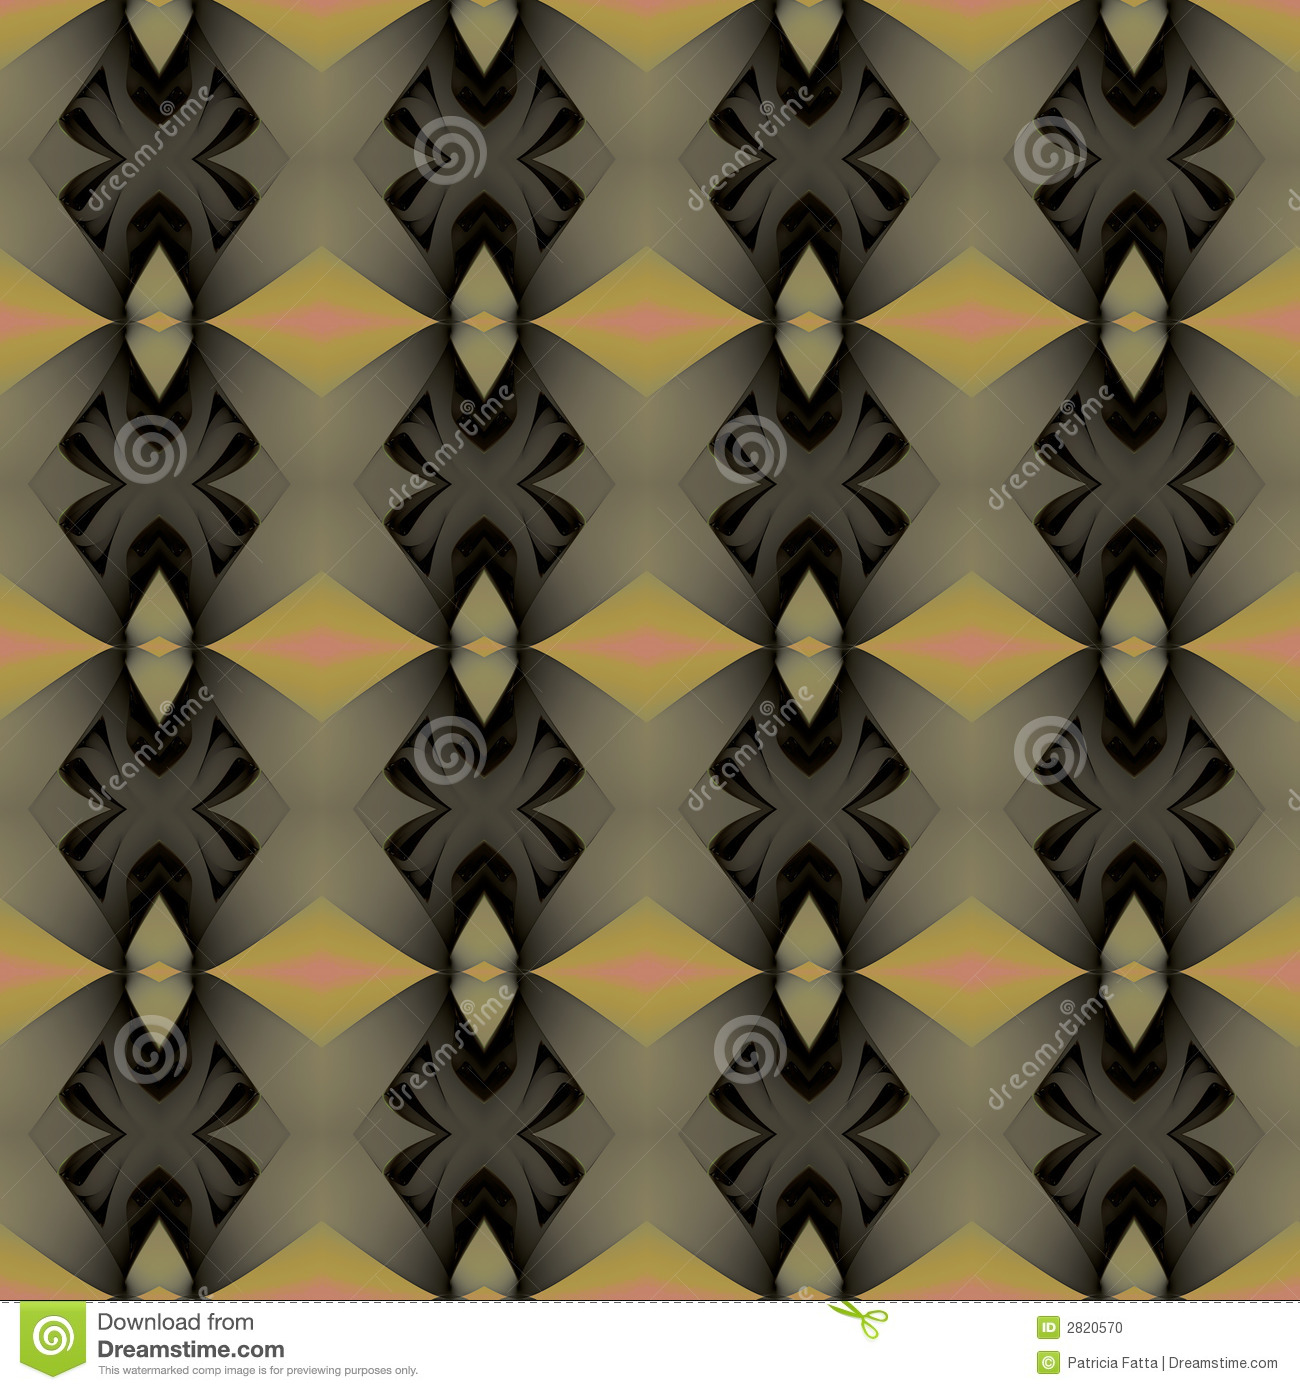 masculine pattern design viewing gallery